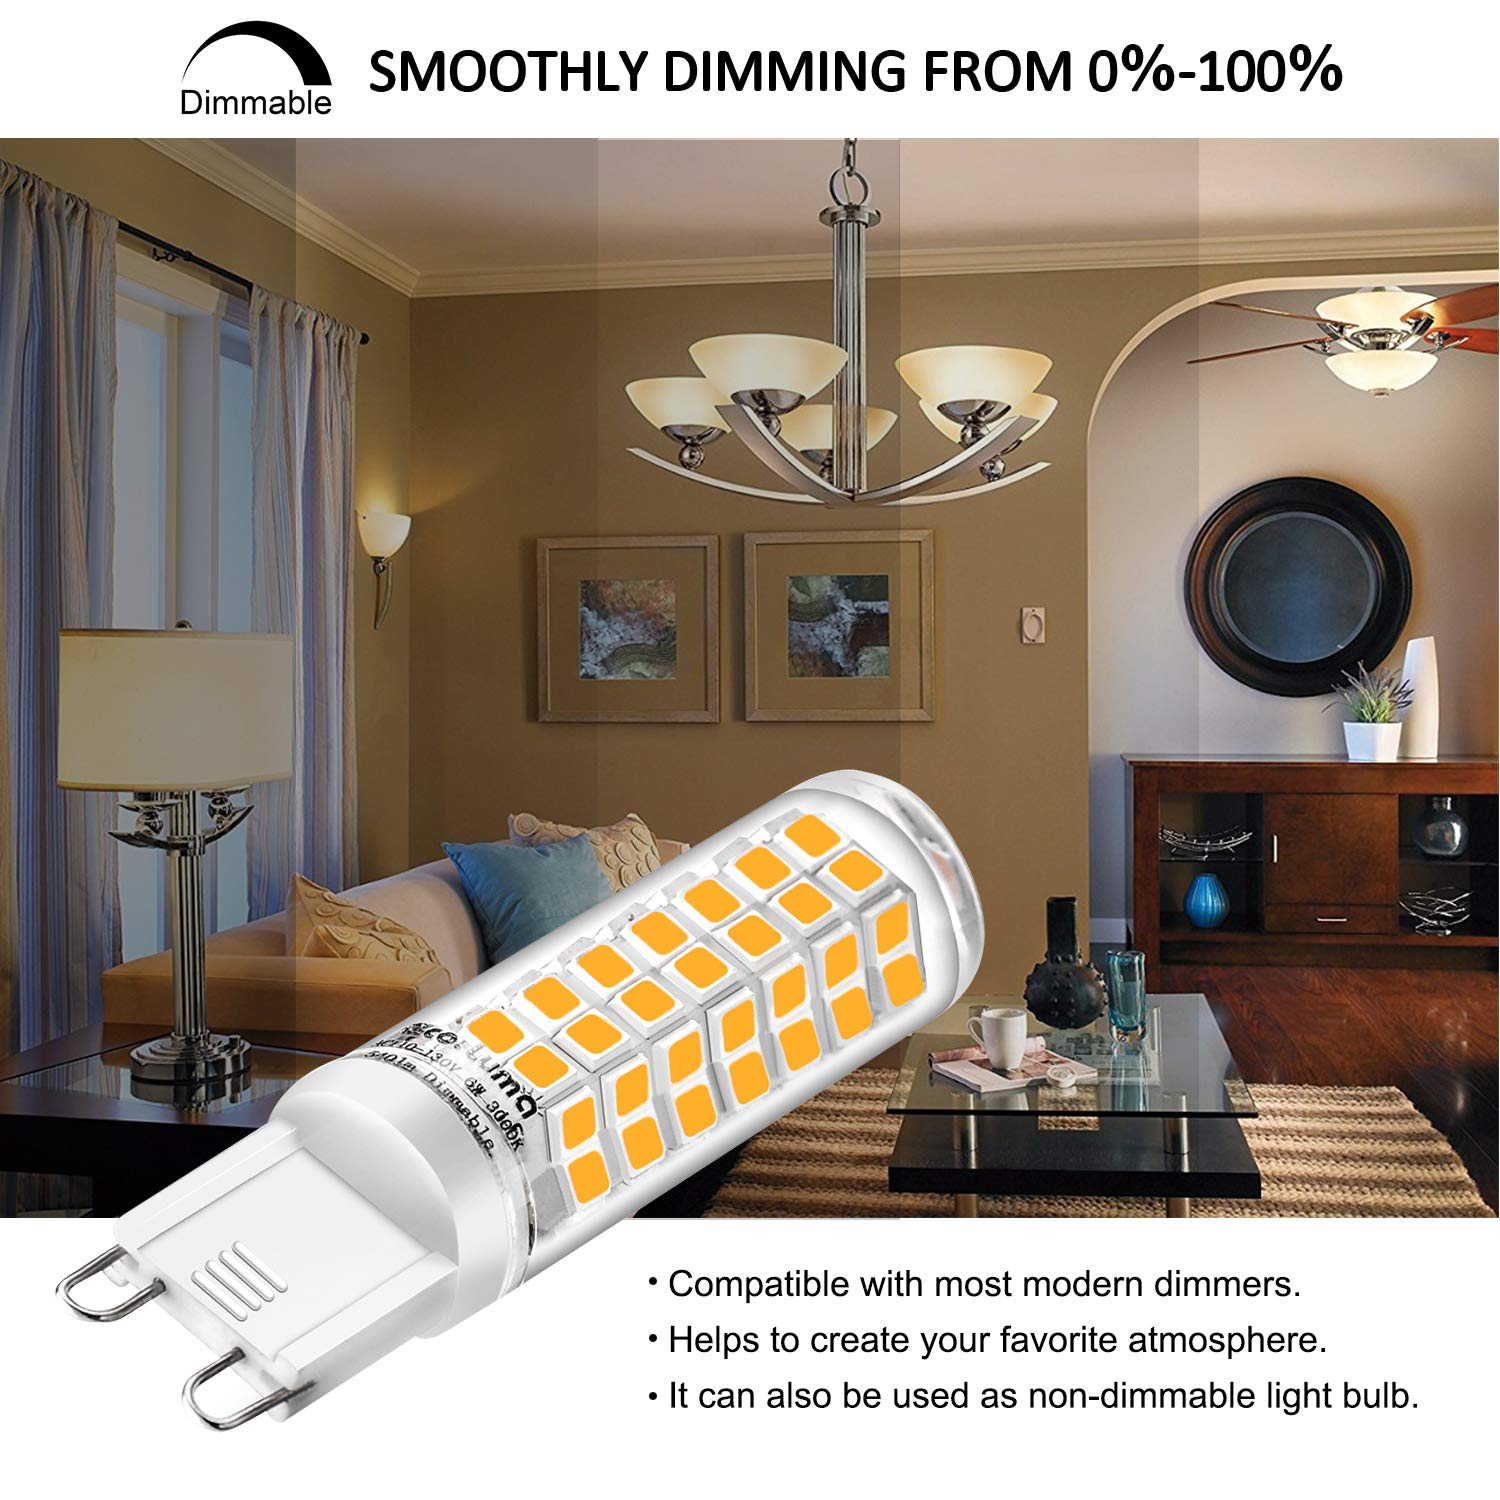 G9 LED replacement bulbs are dimmable